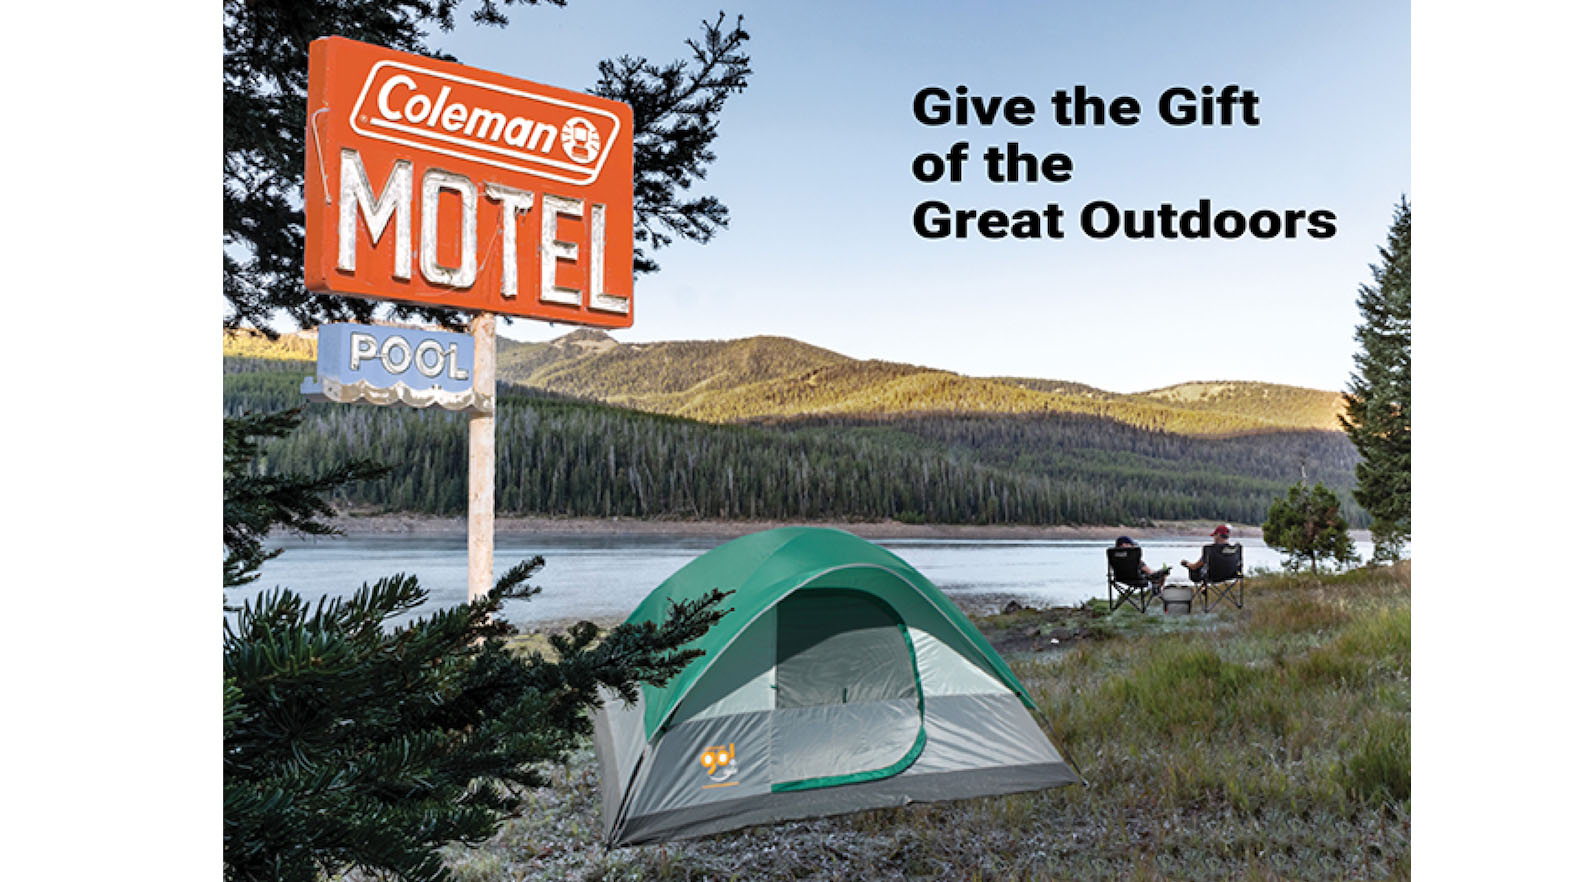 Give the Gift of the Great Outdoors with Coleman